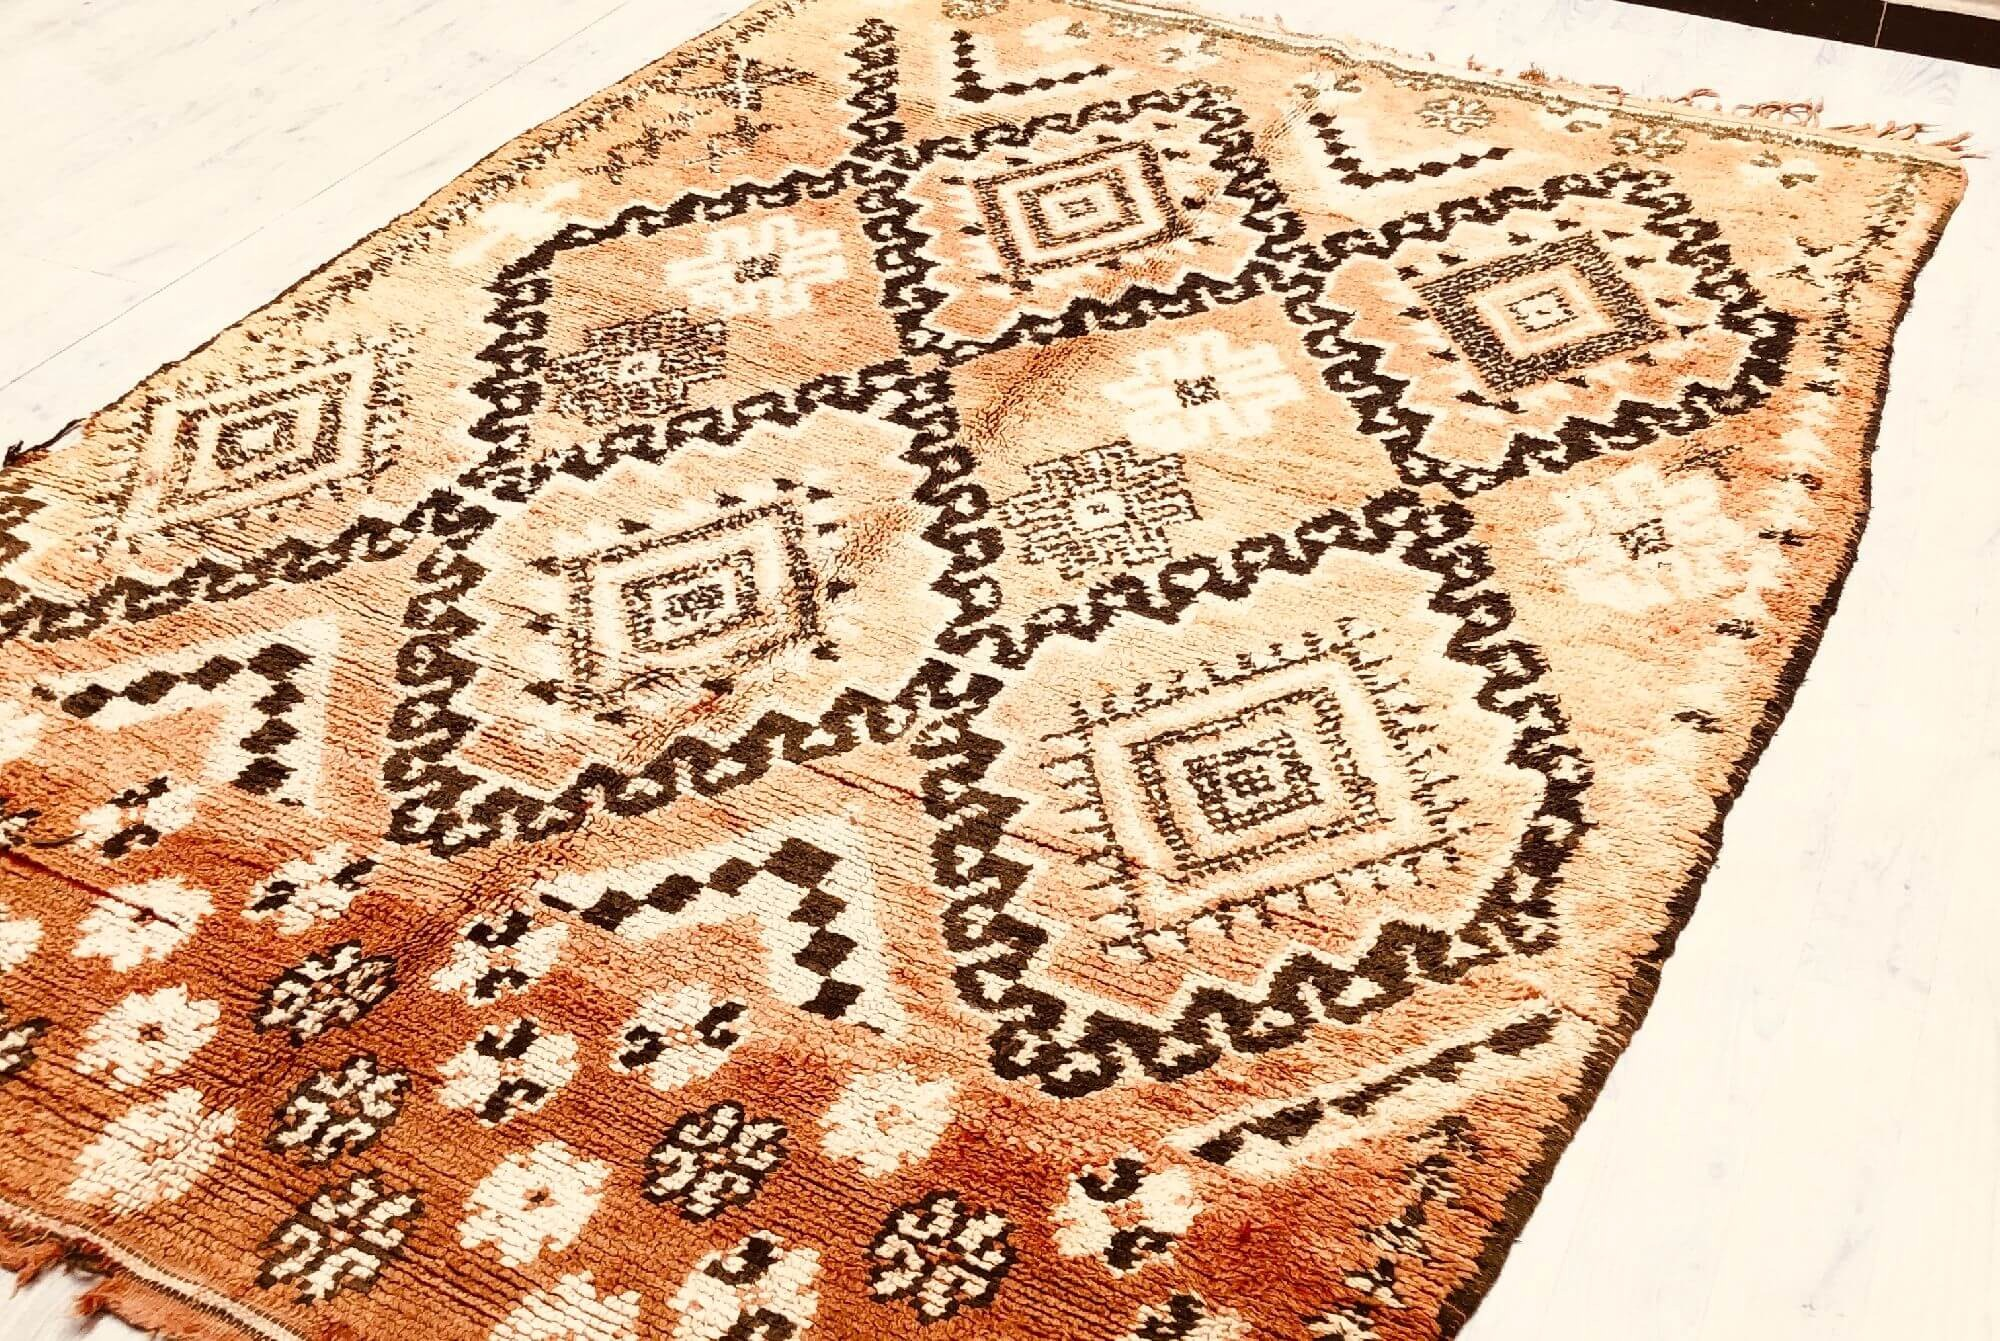 Vintage rug antique look